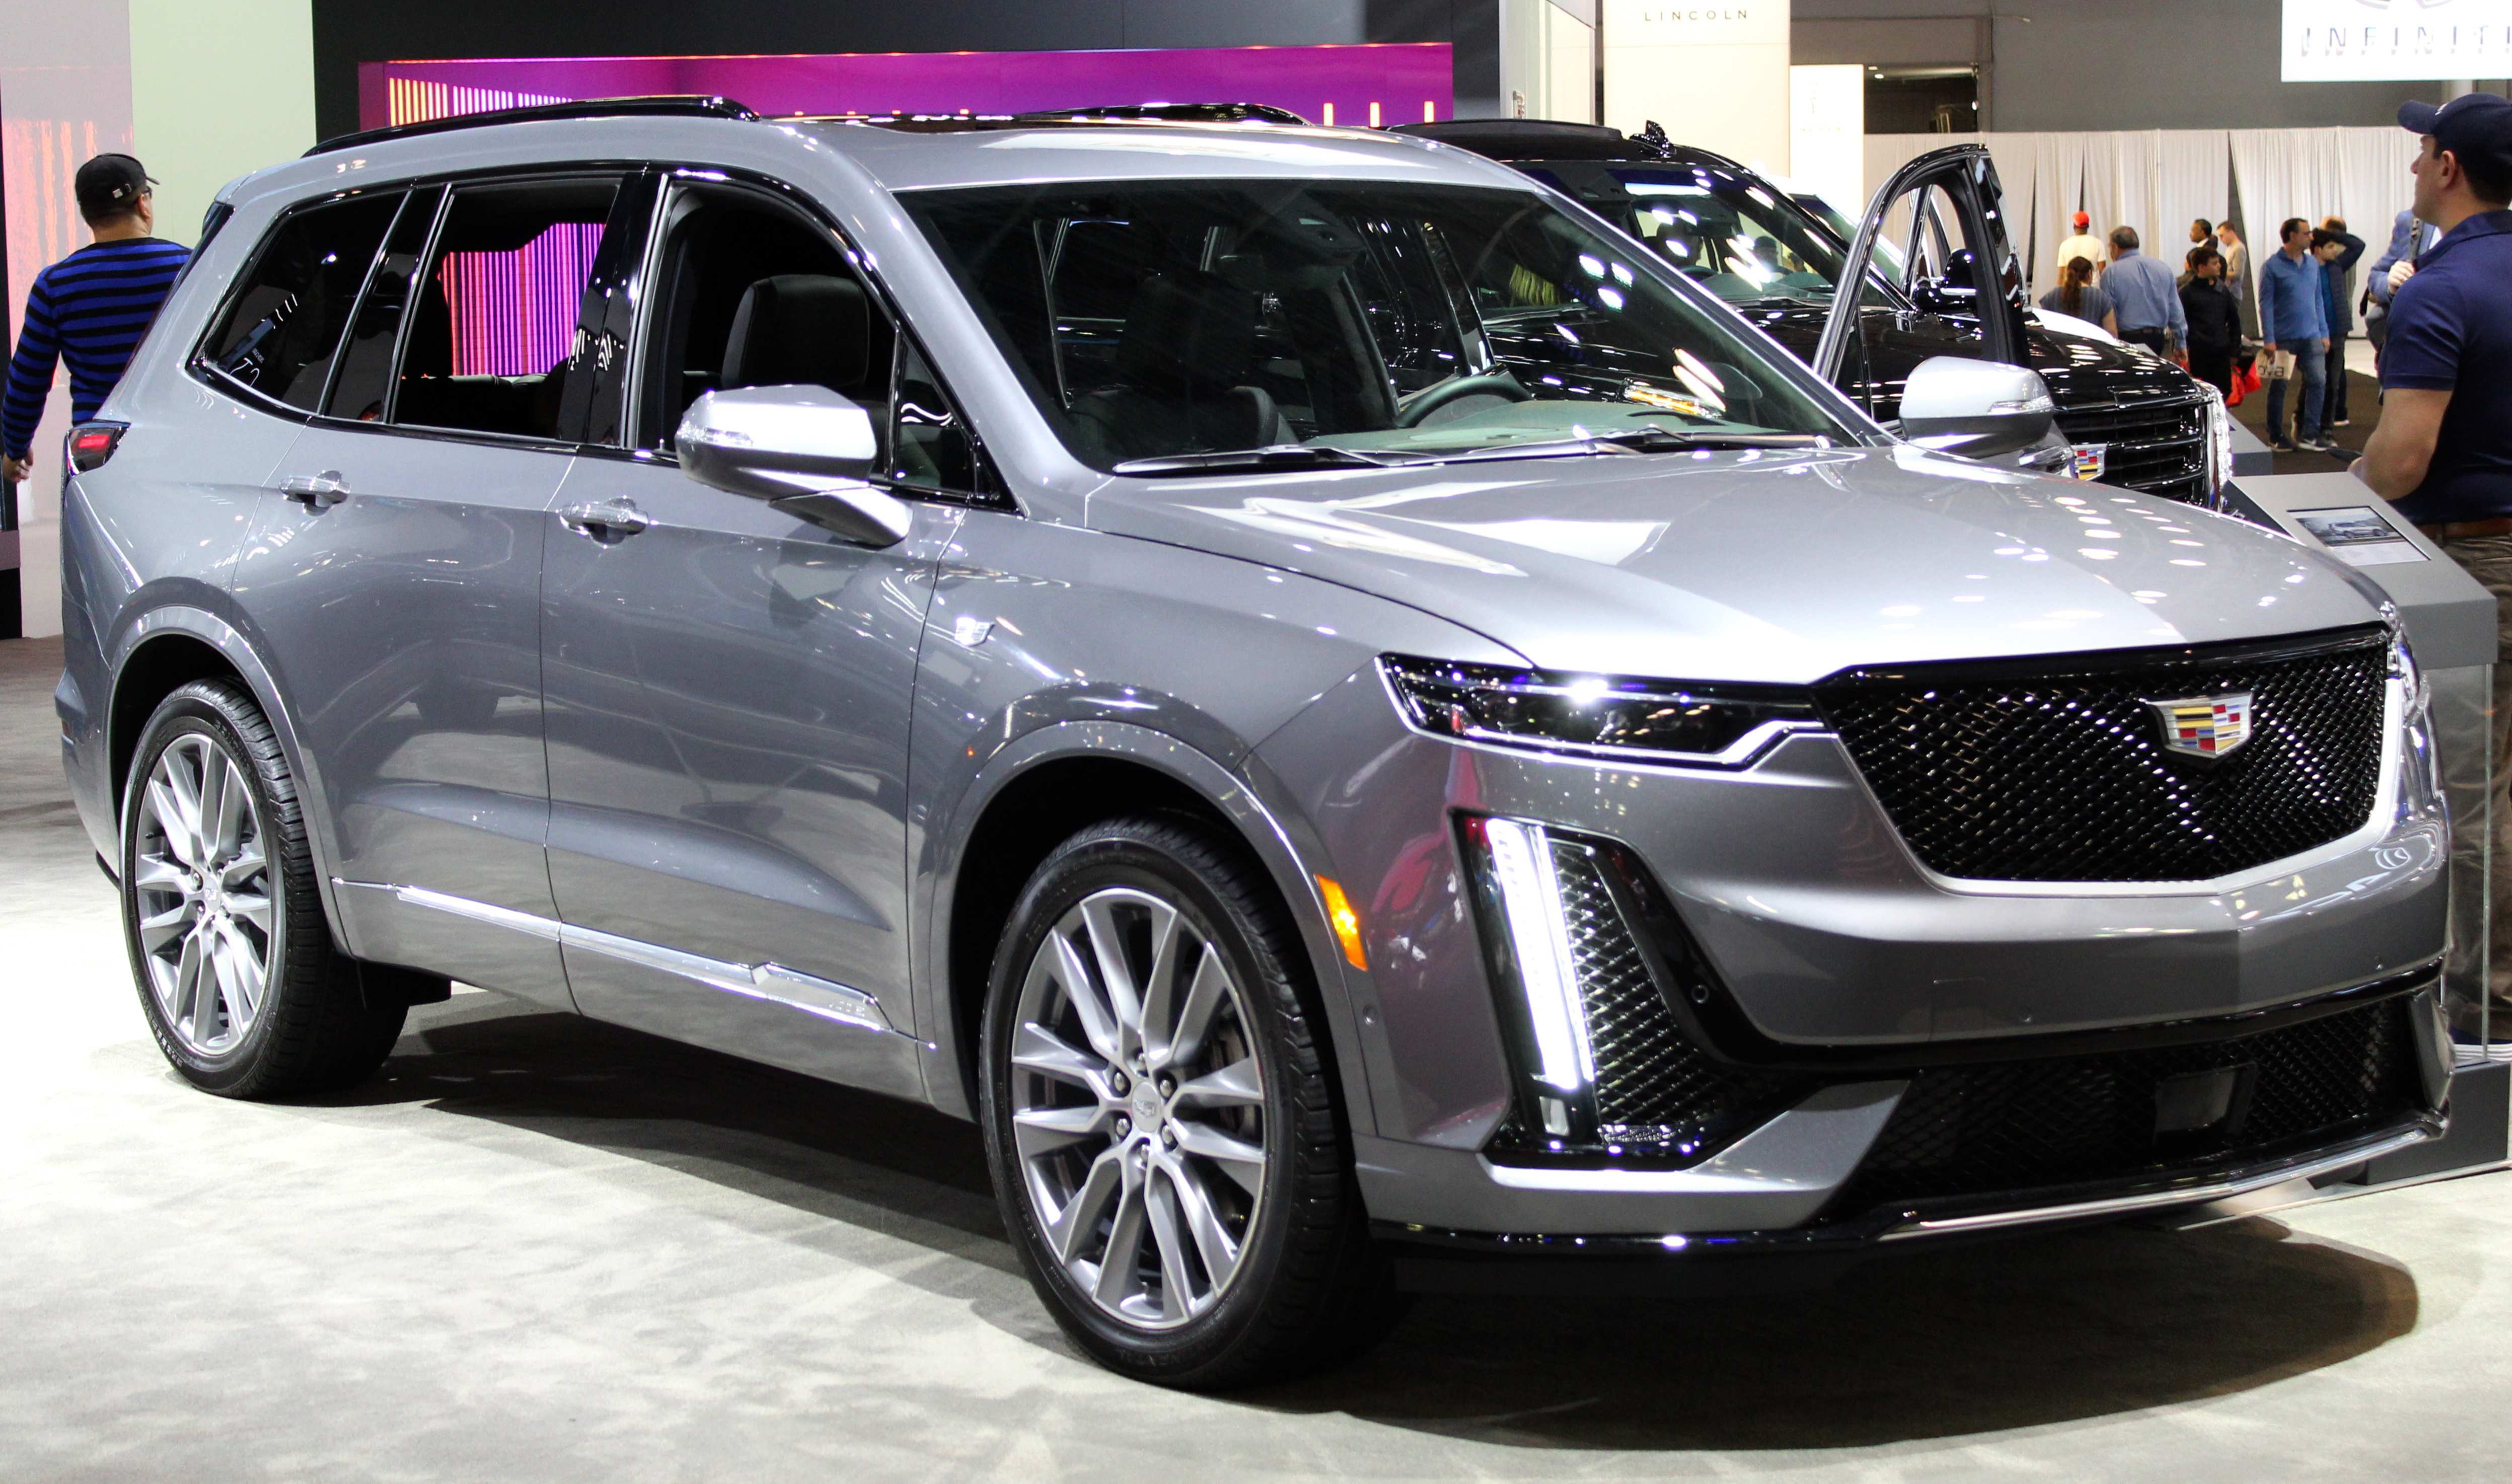 53 Concept of 2020 Cadillac Xt6 Length Redesign and Concept for 2020 Cadillac Xt6 Length